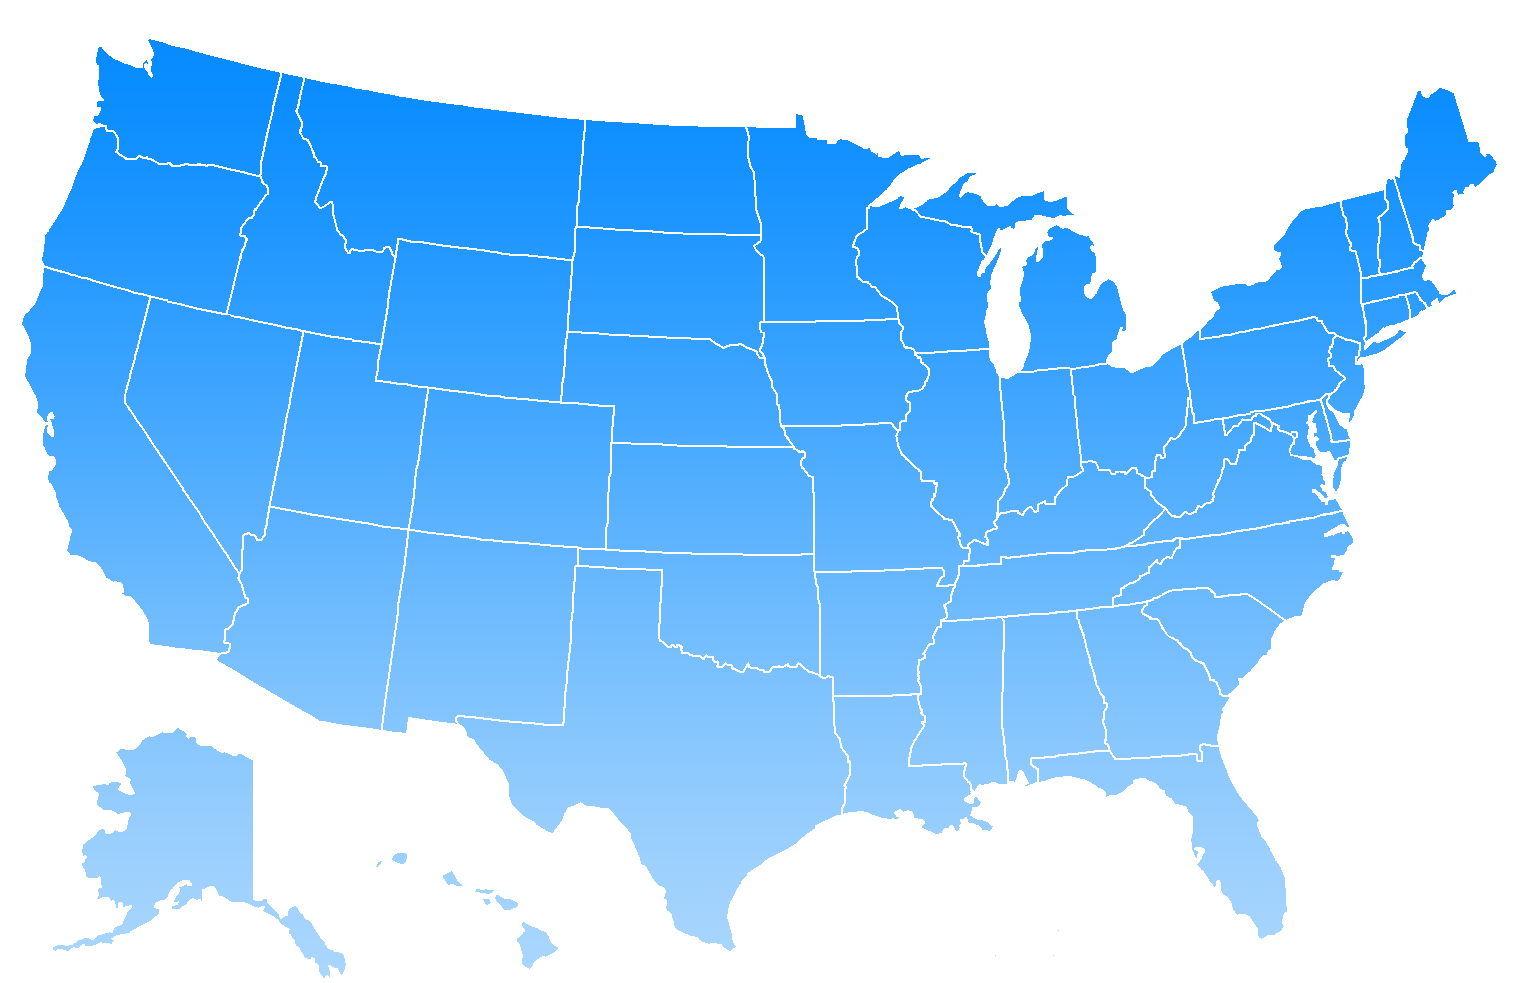 Printable Blank Us Map With State Outlines - ClipArt Best